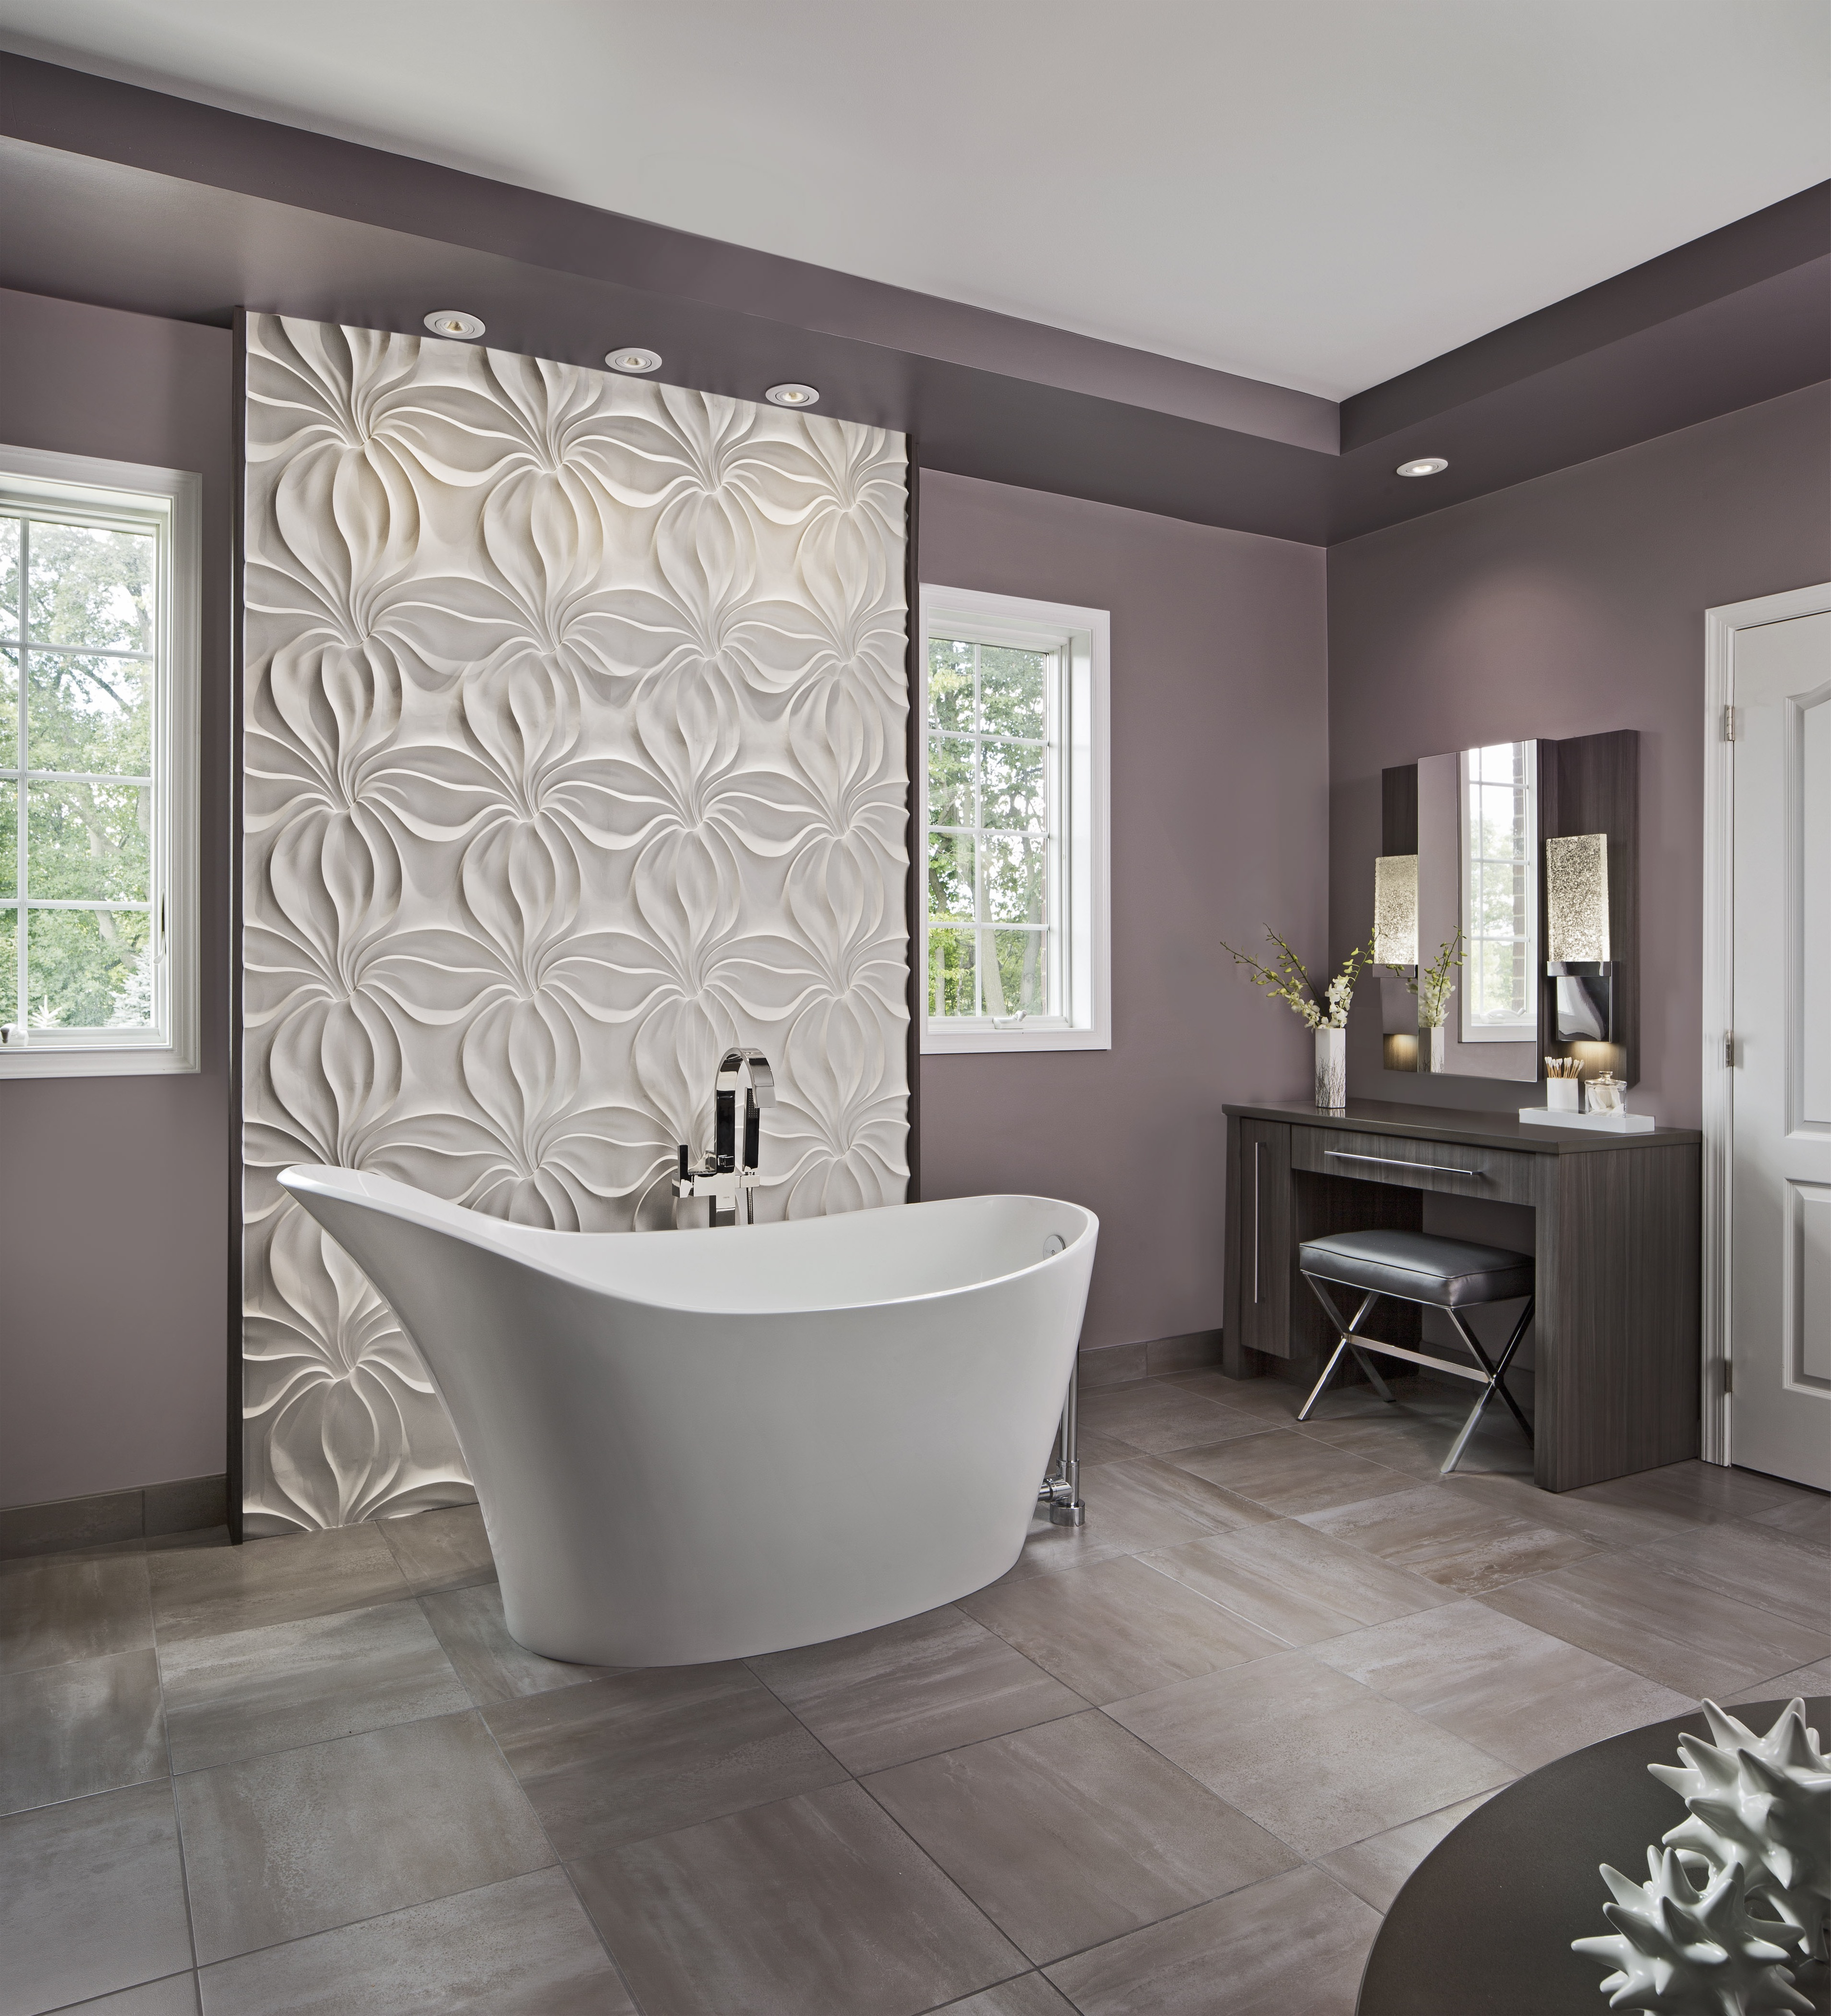 Kids Tub With Accent Wall: The Complete Guide To Remodel Your Bathroom #16937